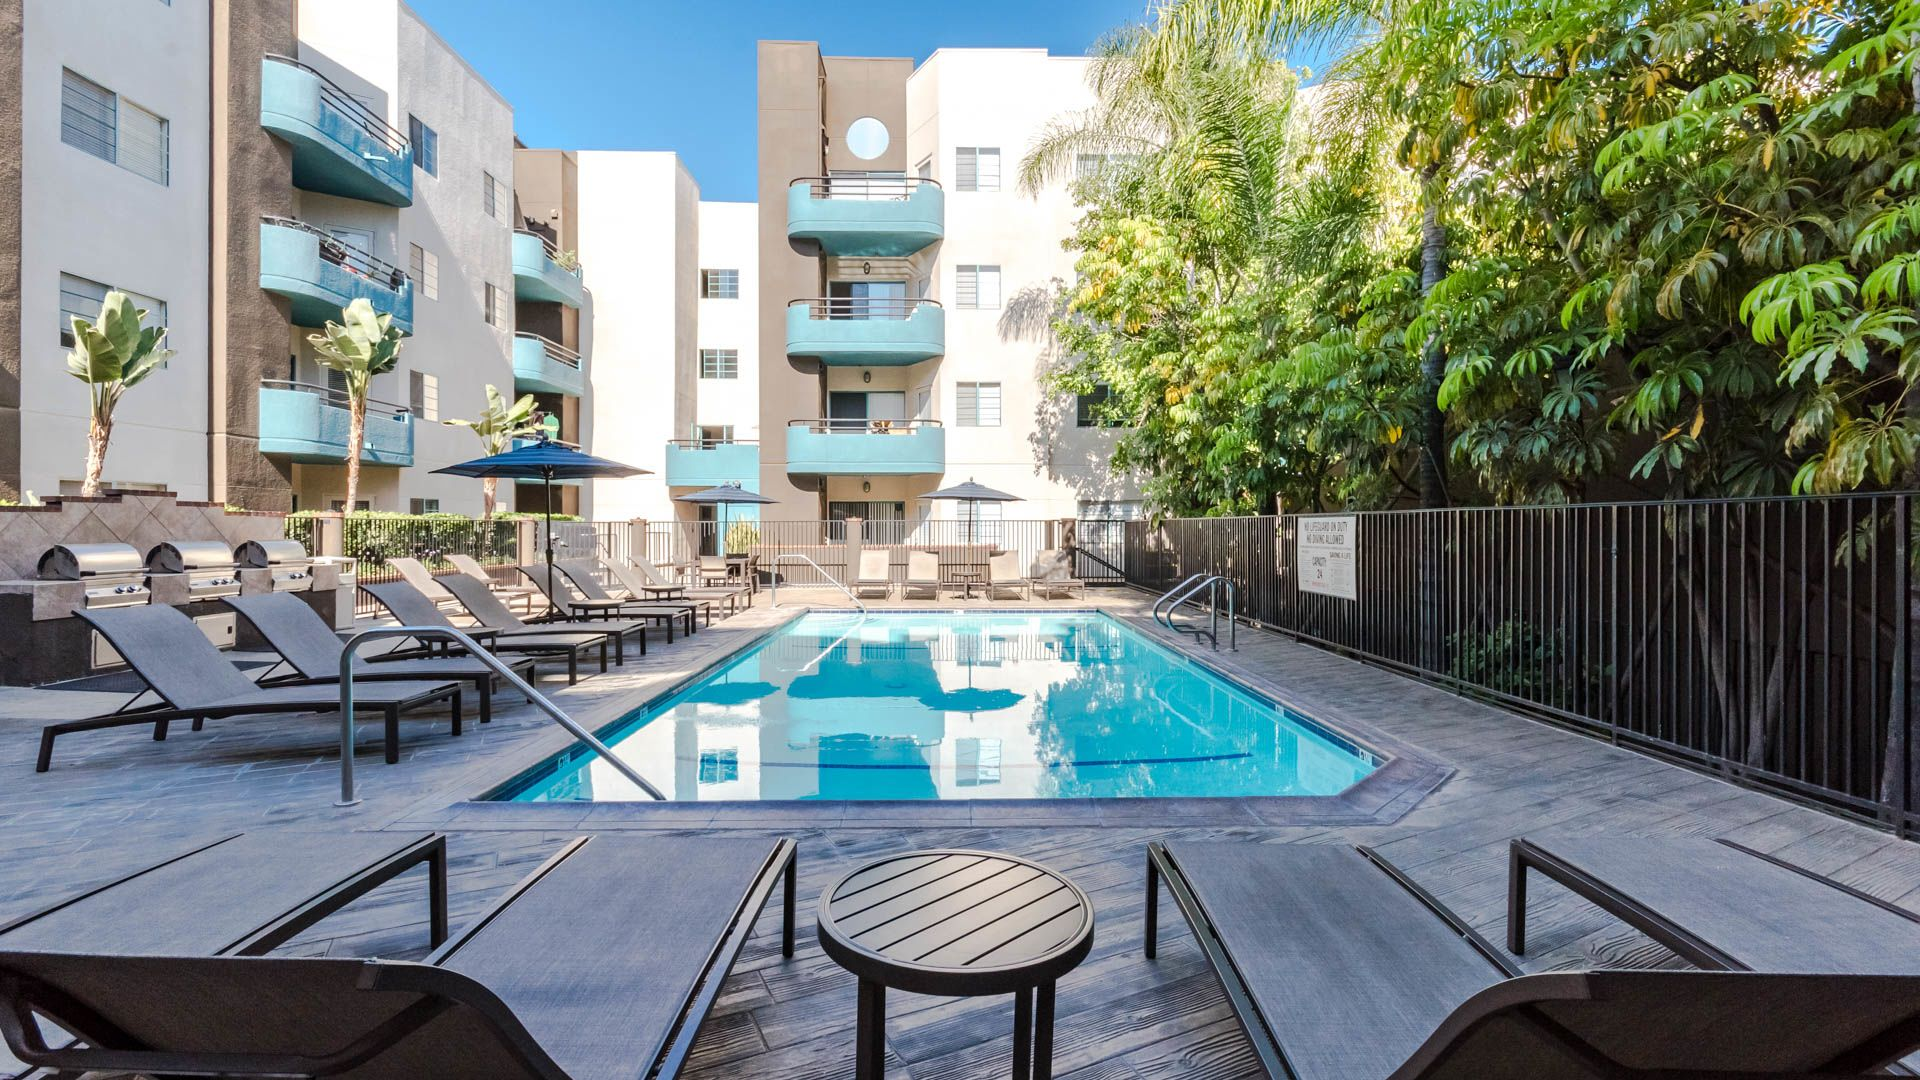 Academy Village Apartments - Swimming Pool